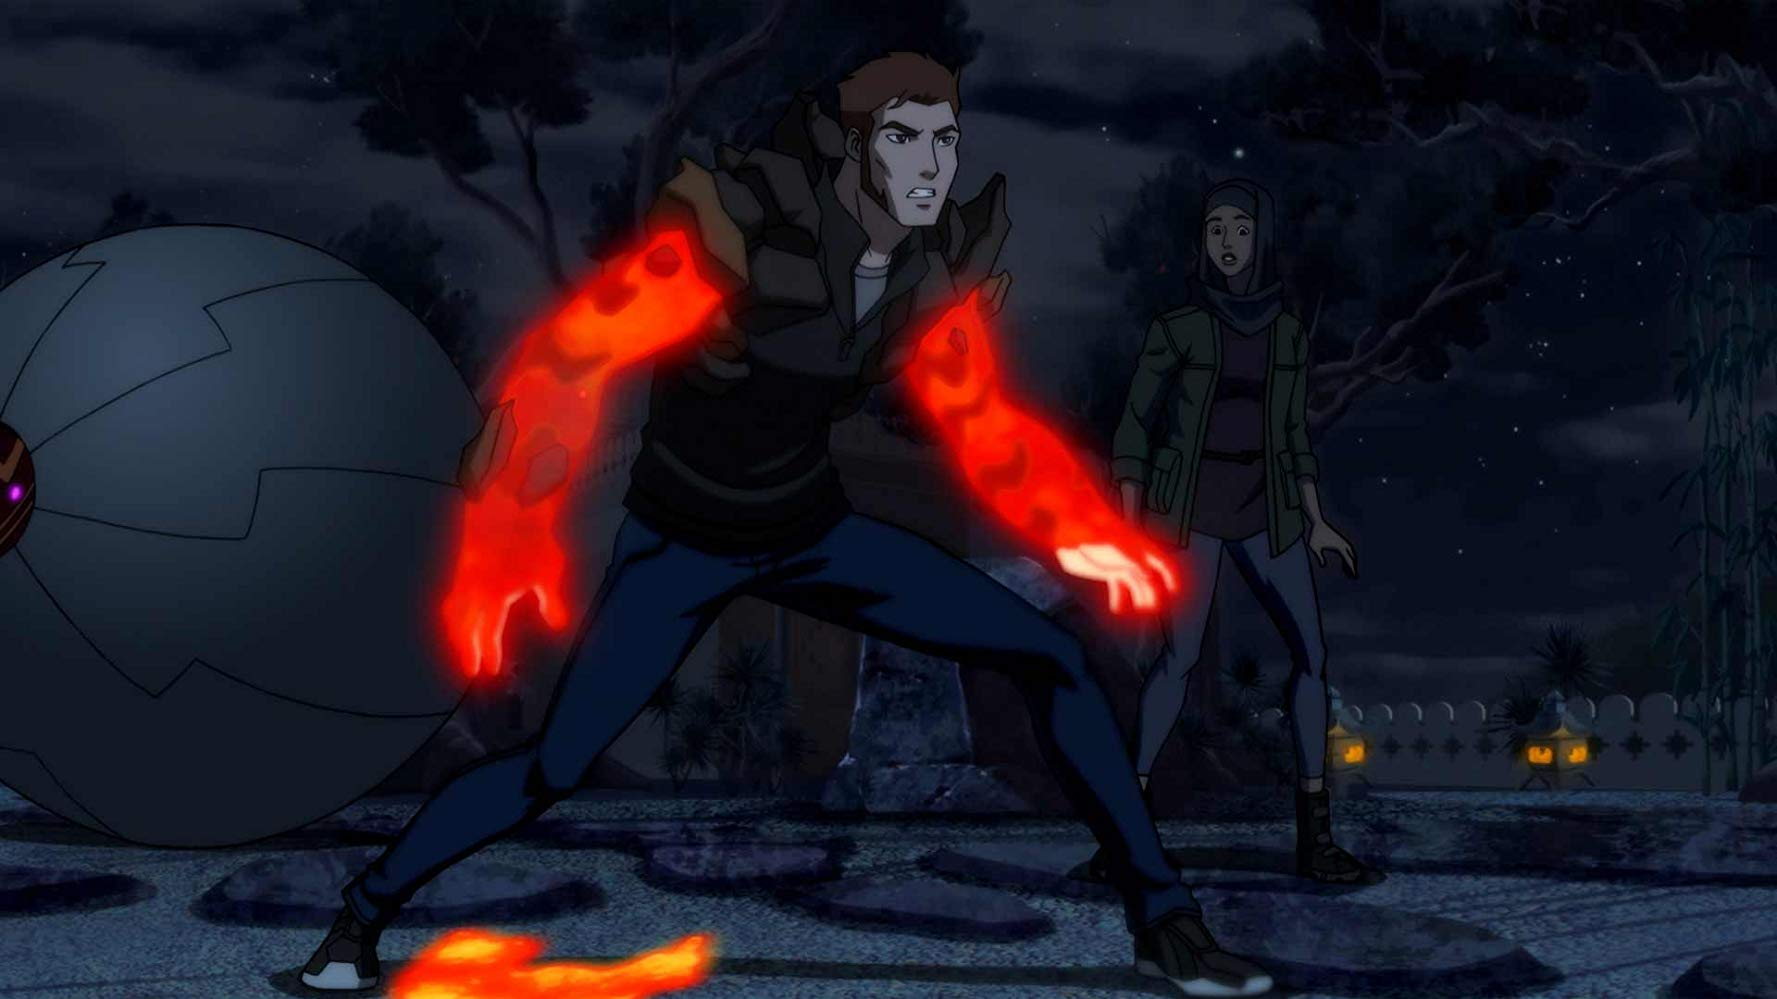 The Supercycle, Prince Brion and Geo-Force in 'Young Justice: Outsiders' Source: IMDB